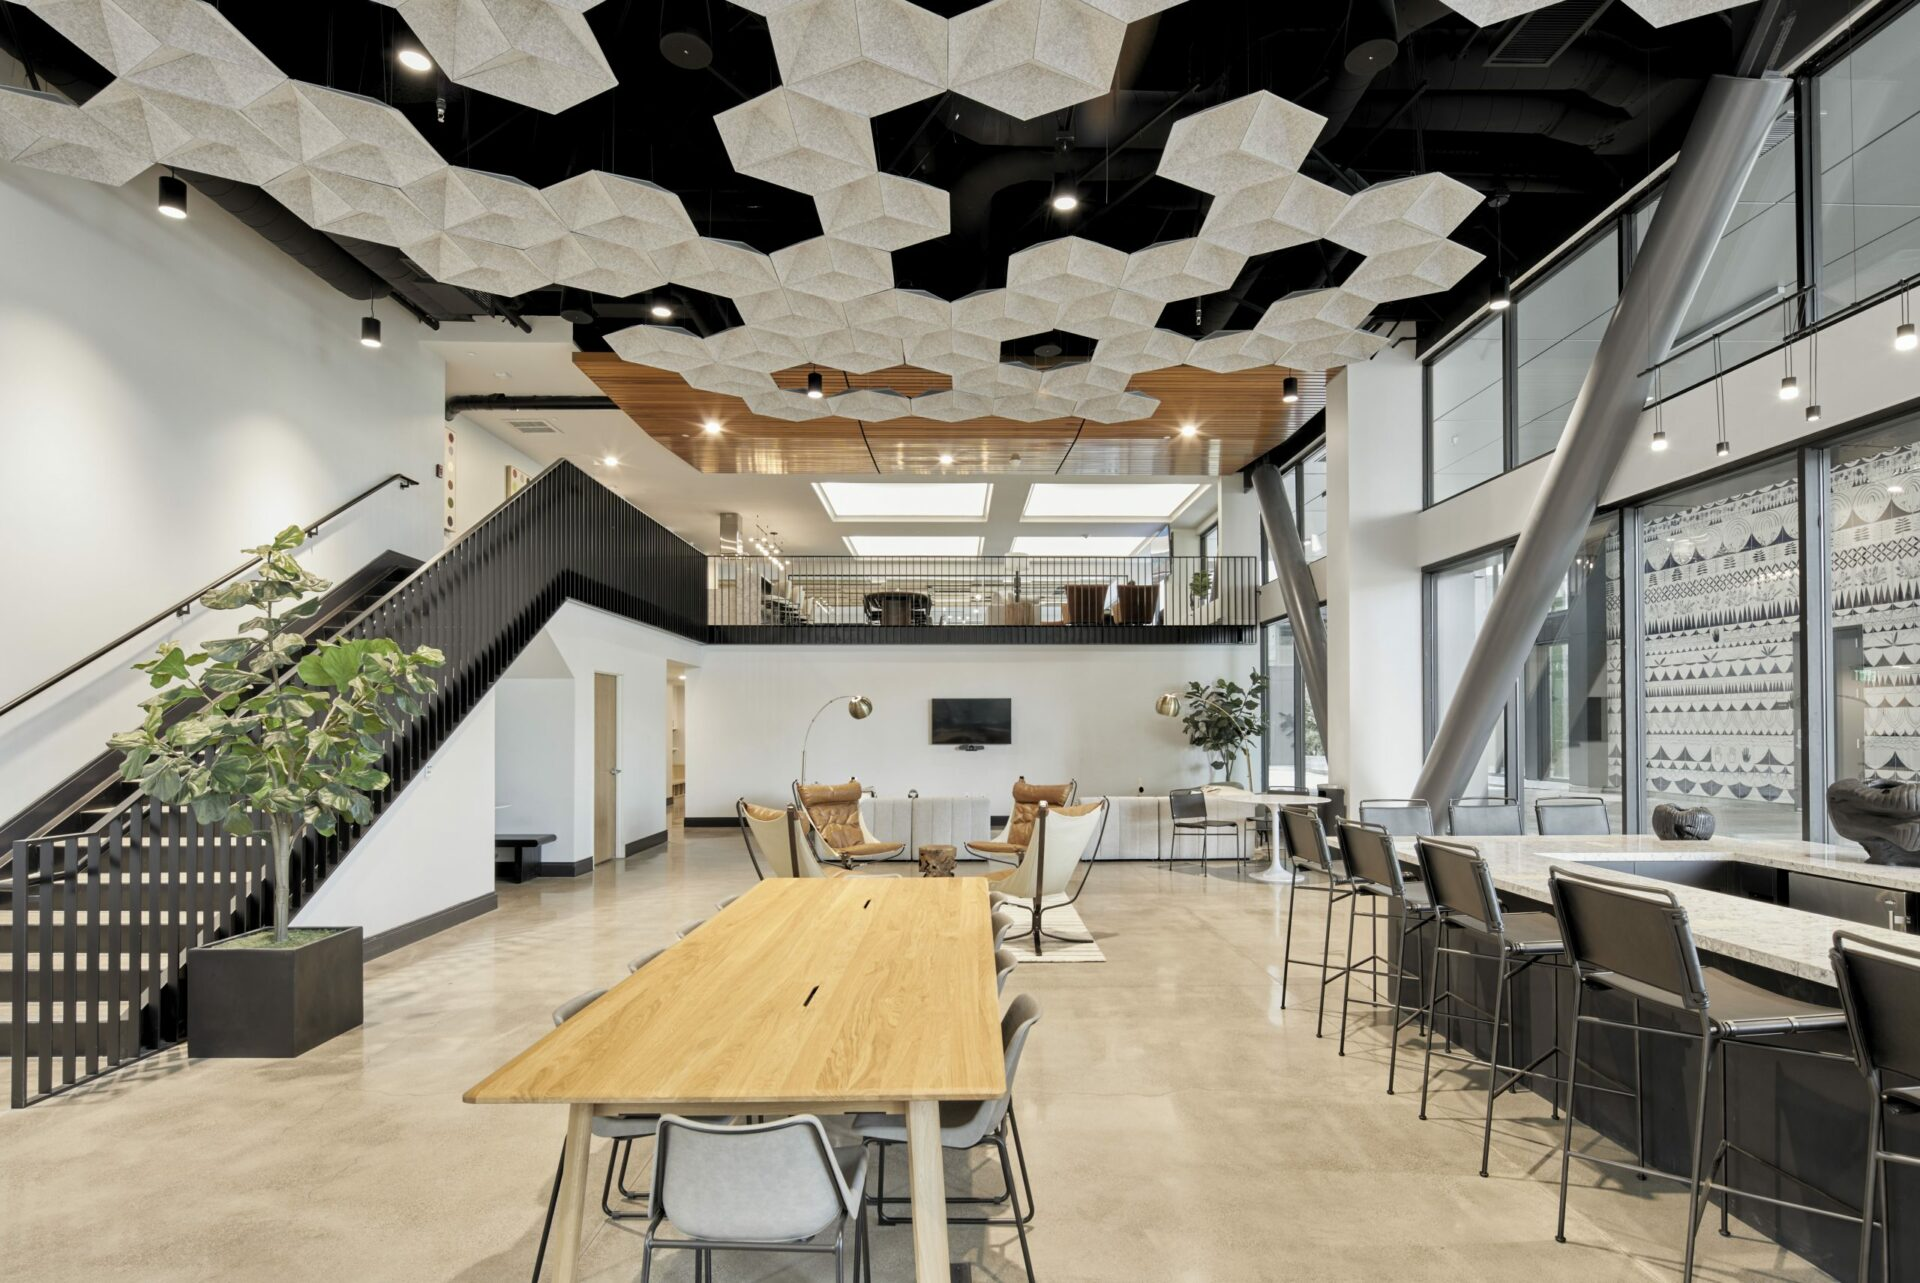 Oakland apartments with co-working space